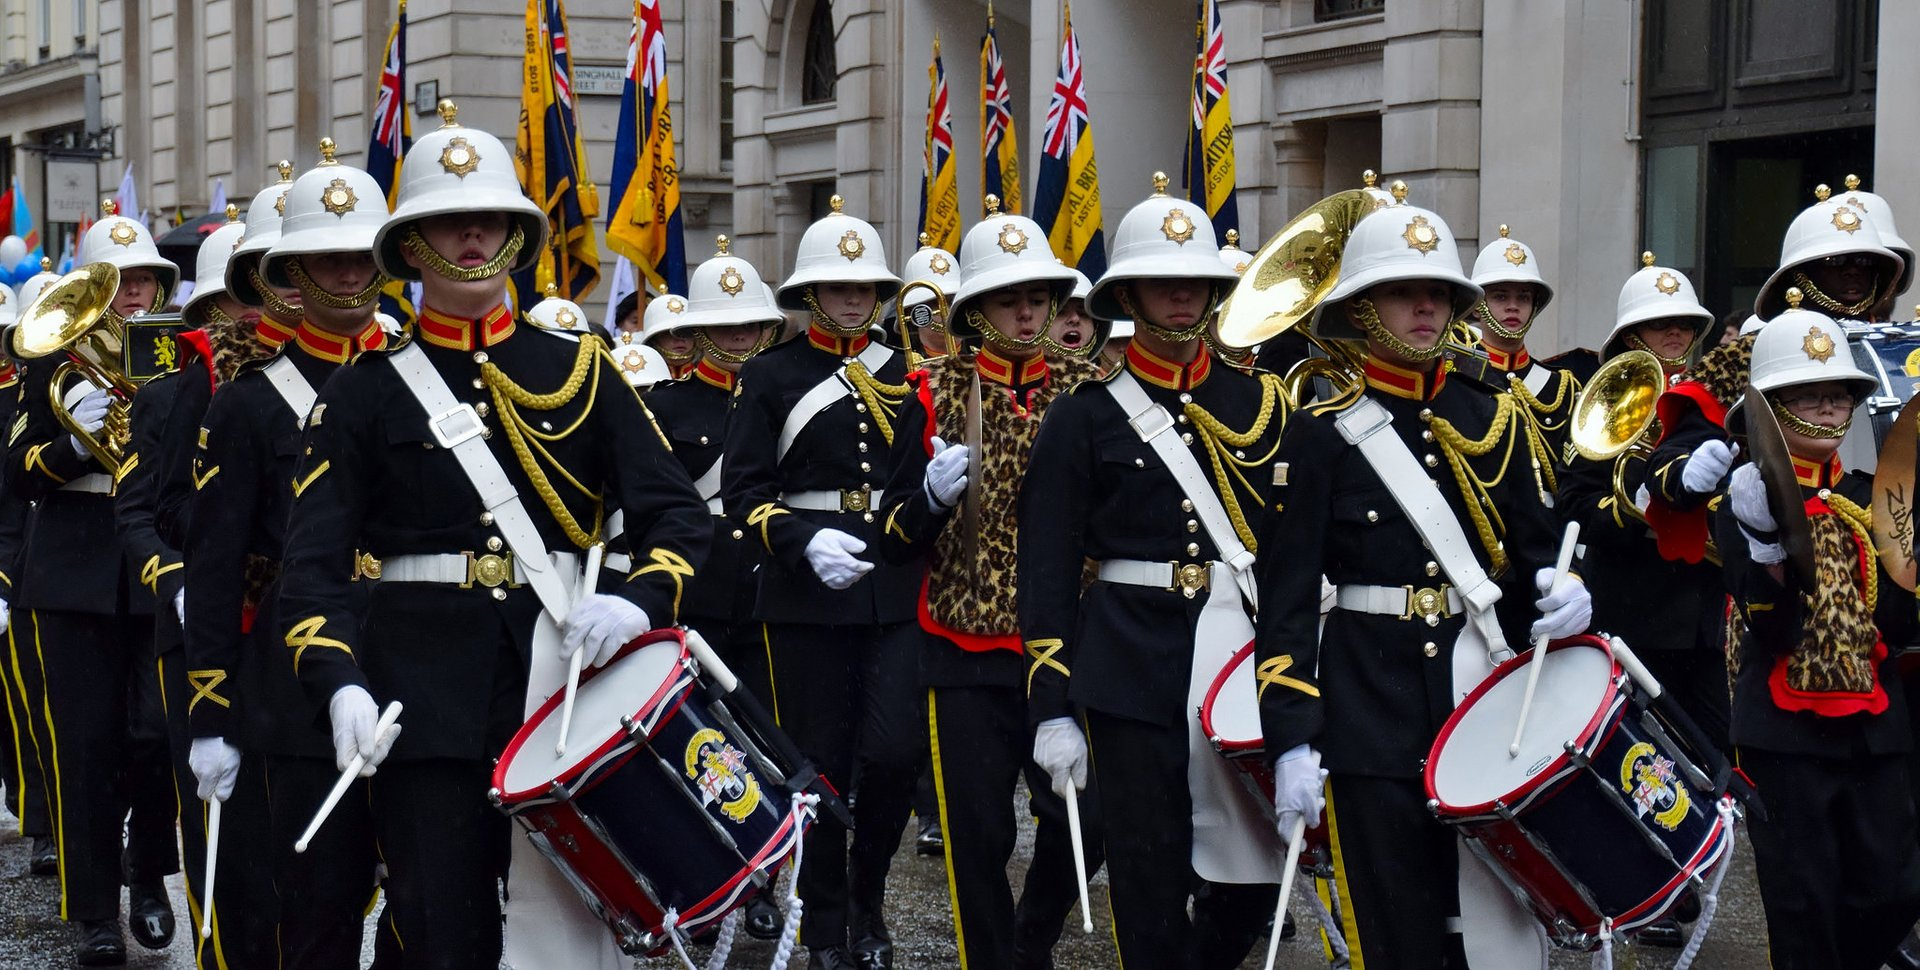 Best time to see Lord Mayor's Show in London 2020